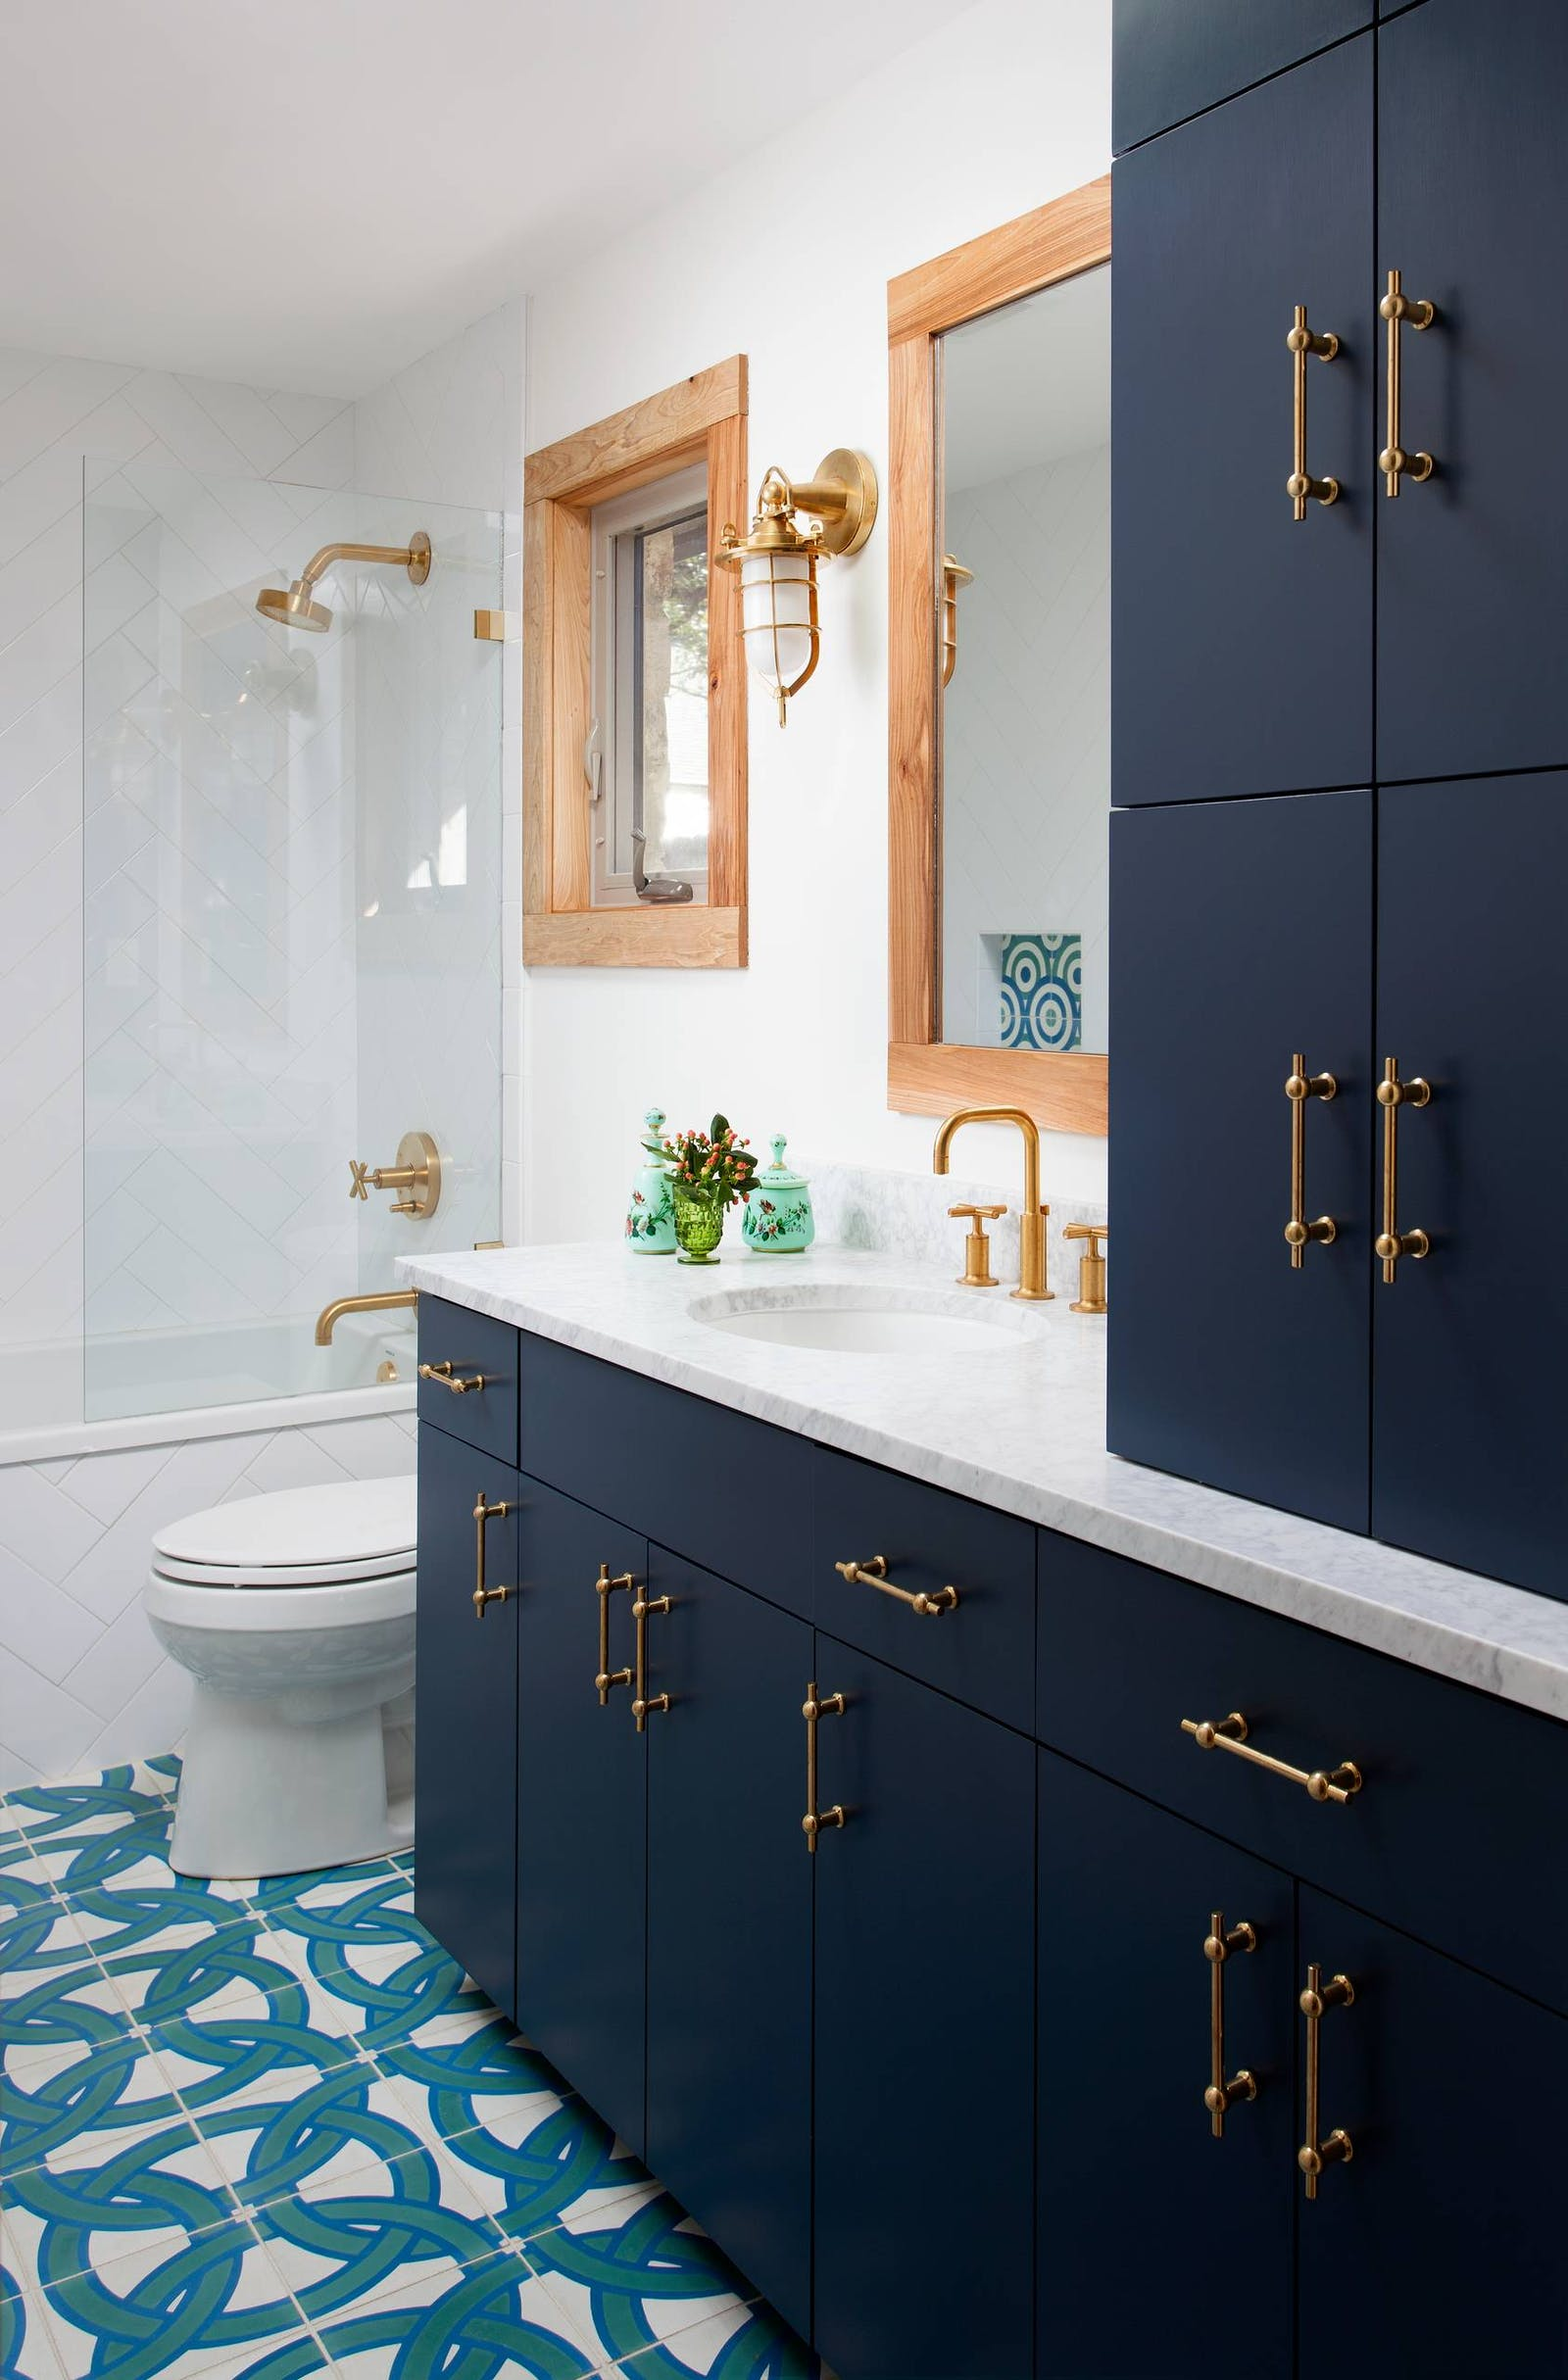 Bright bathroom with tiled floors and navy cabinets